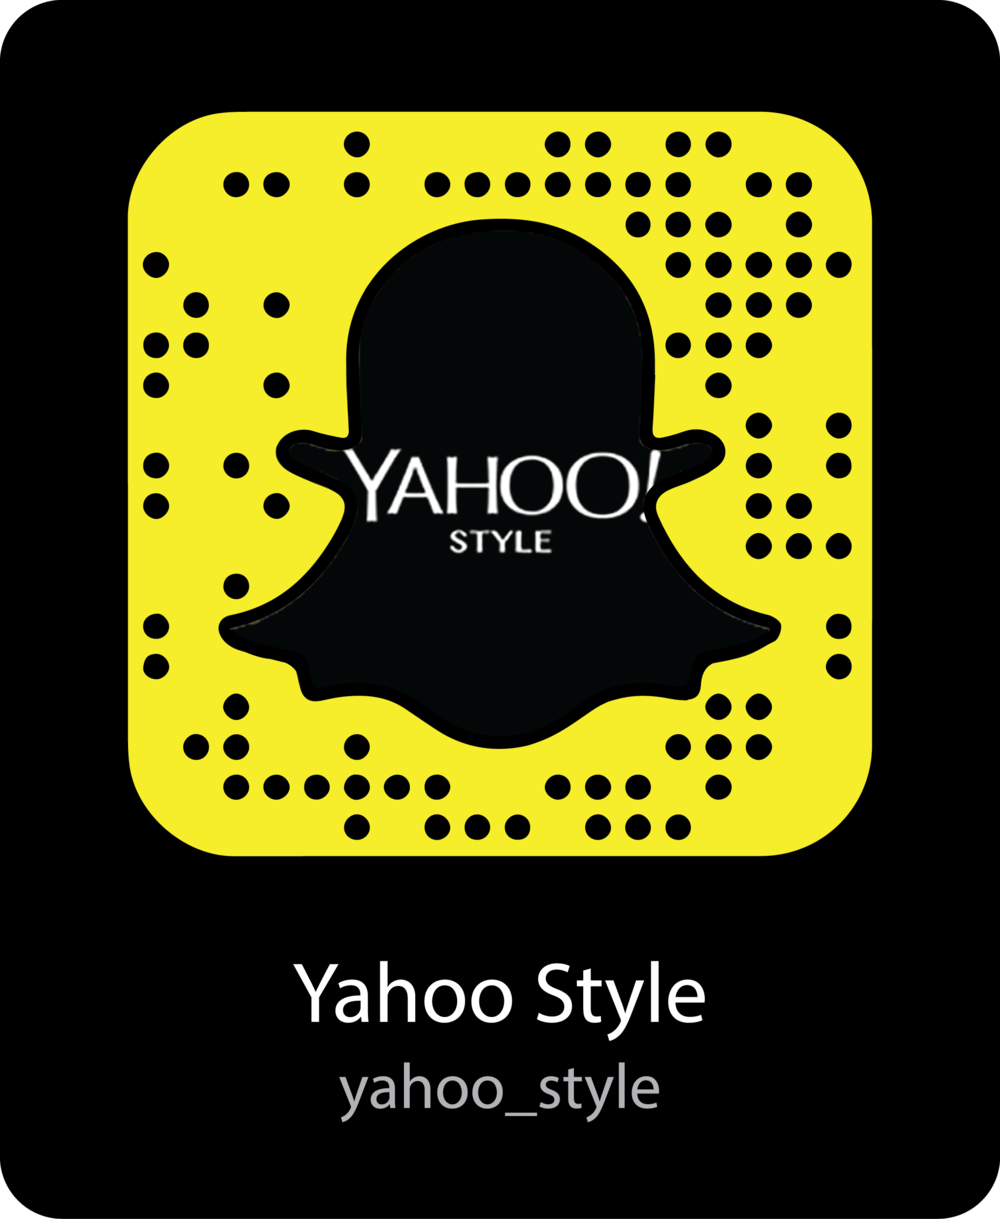 yahoo_style-Brands-snapchat-snapcode.png